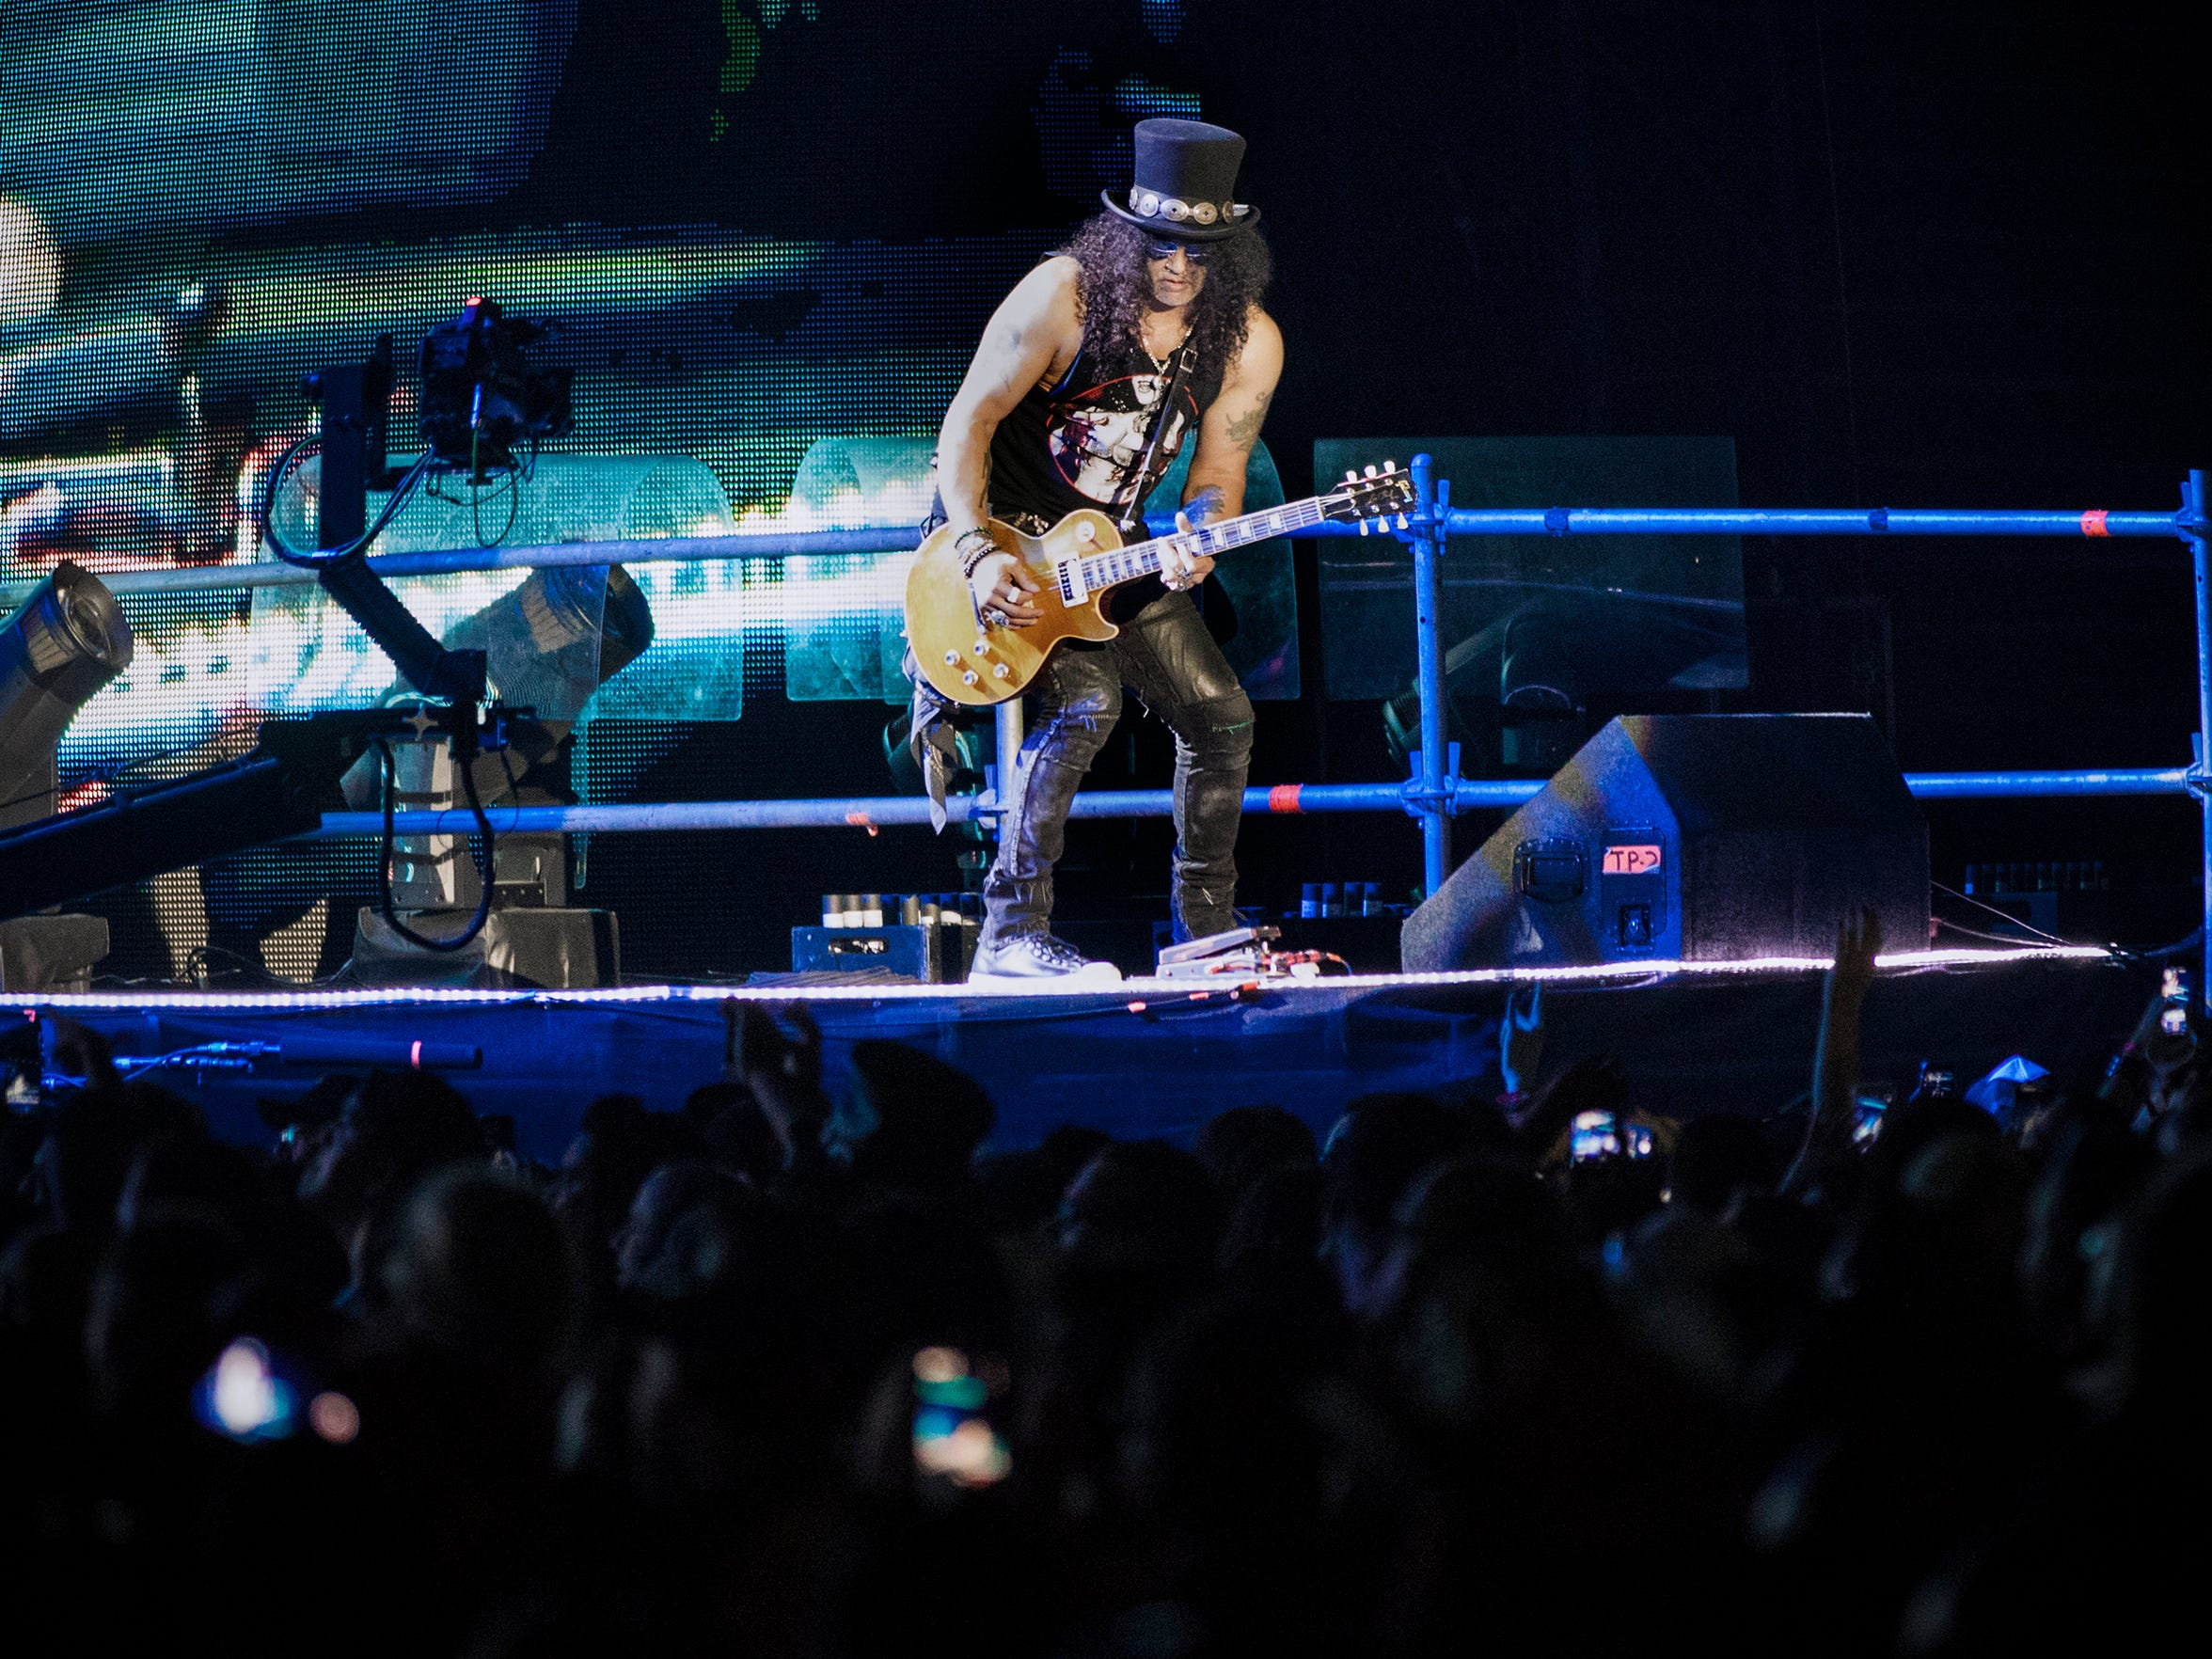 Guns N' Roses plays to a near sellout crowd at the Sun Bowl Wednesday. ZZ Top opened.